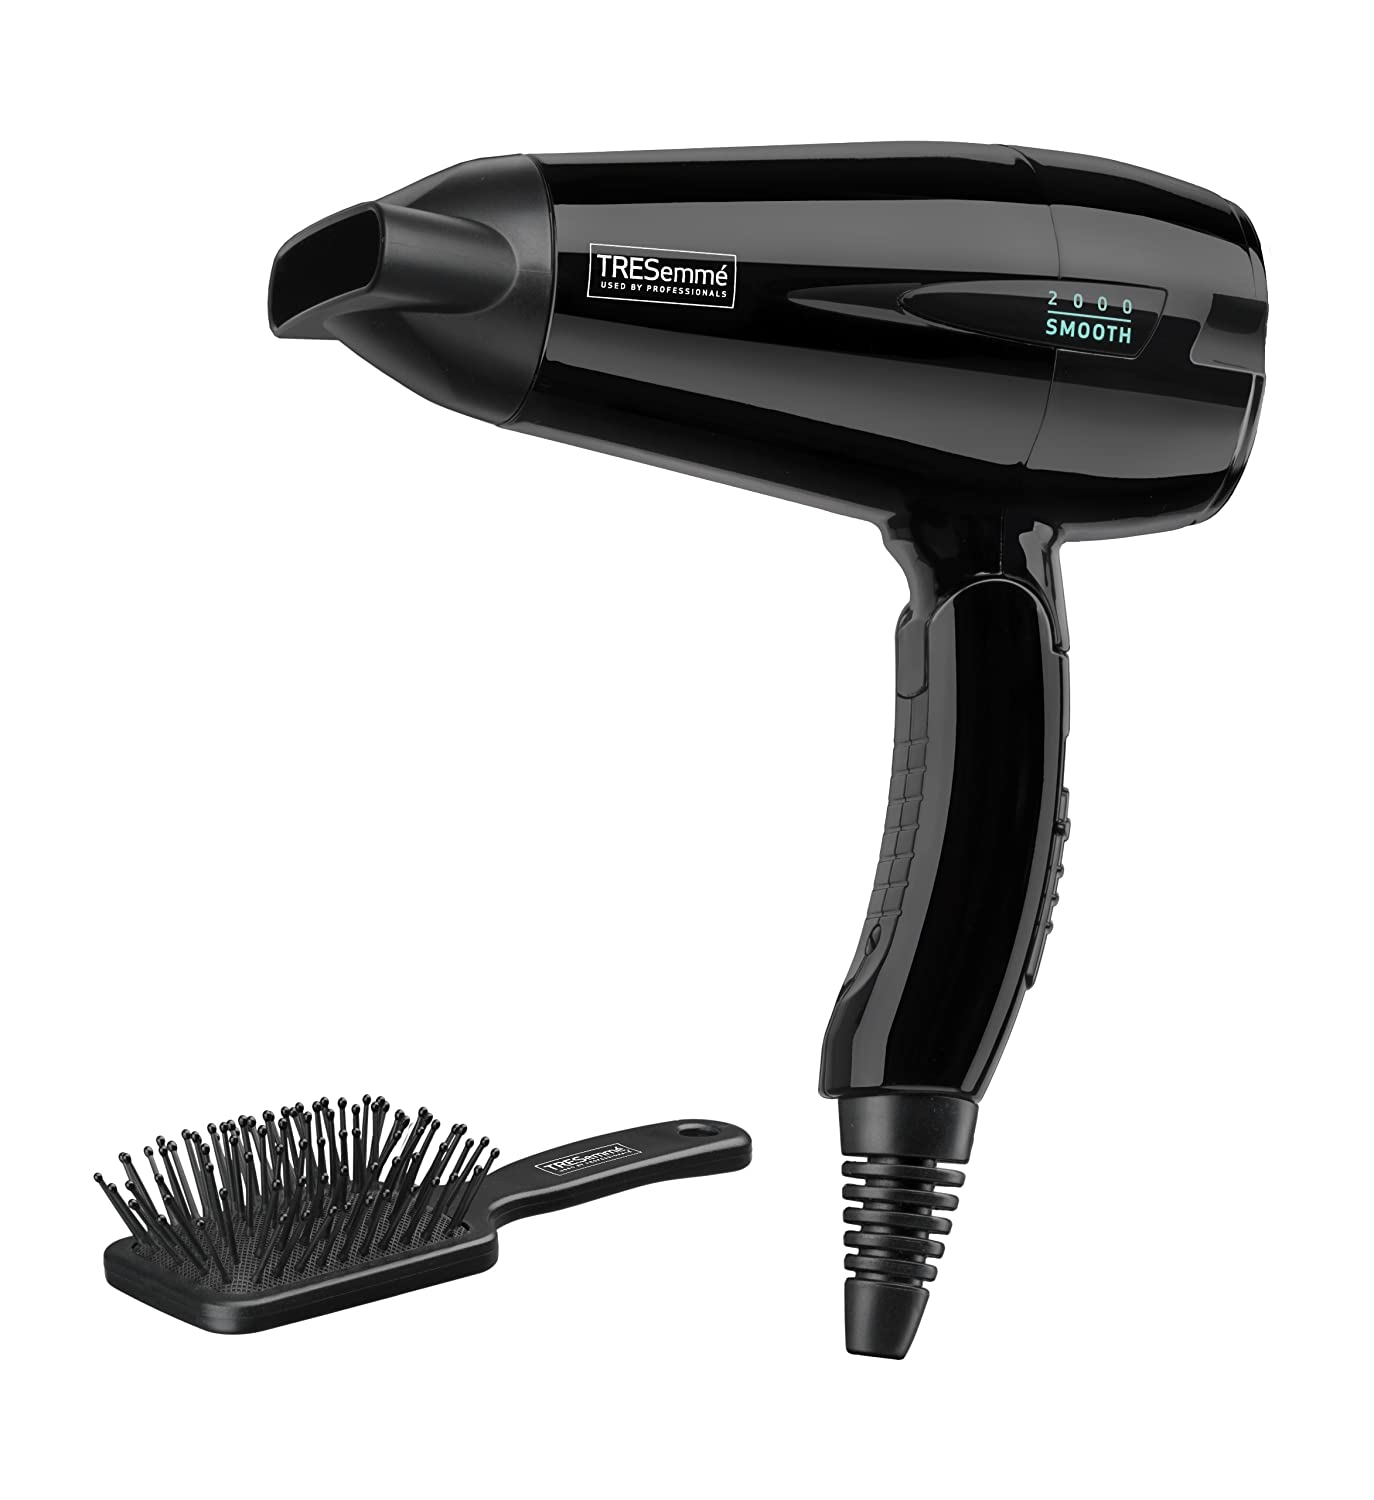 tresemme hair dryer